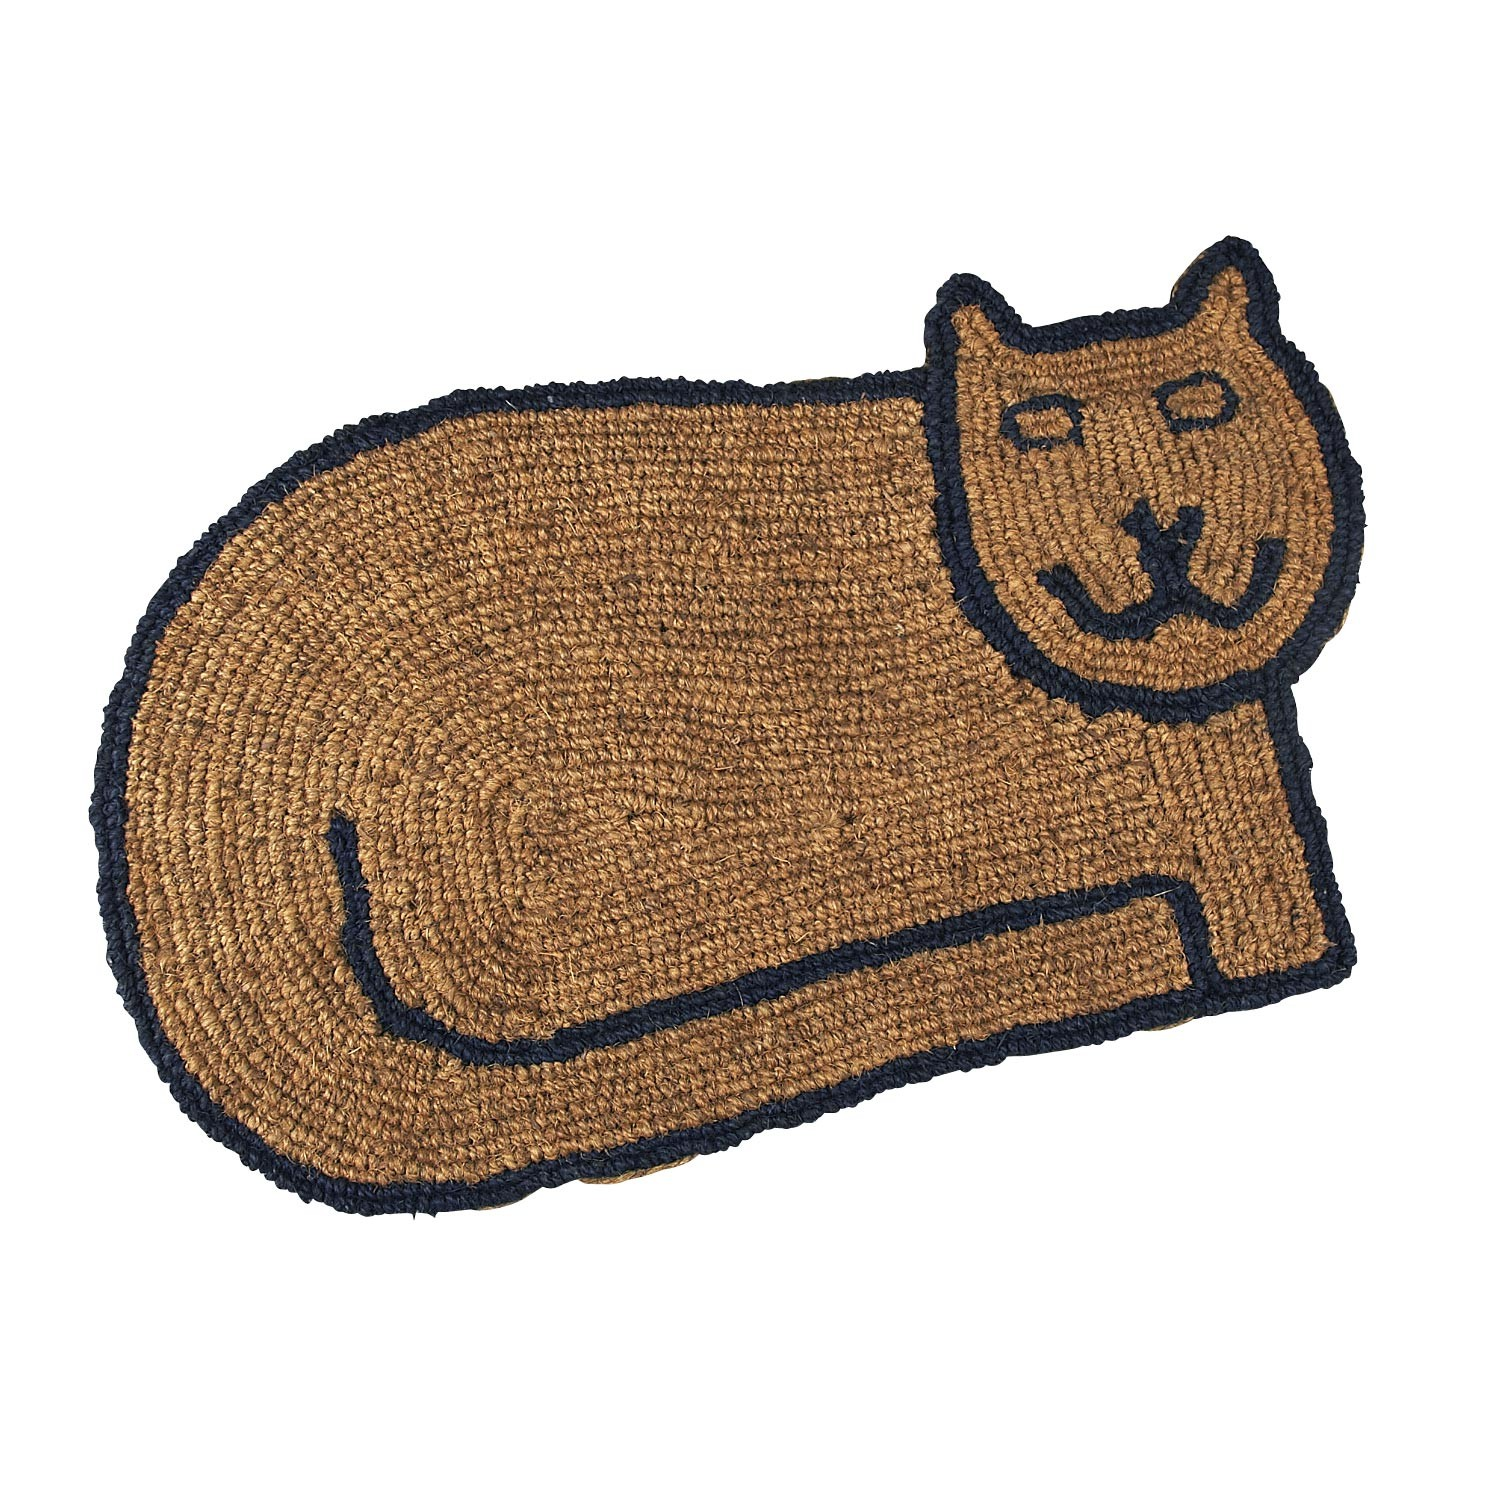 Kitty Clean Doormat  - $40 - made out of coir fiber, which is from the outer brown husks of a coconut - water resistant and durable